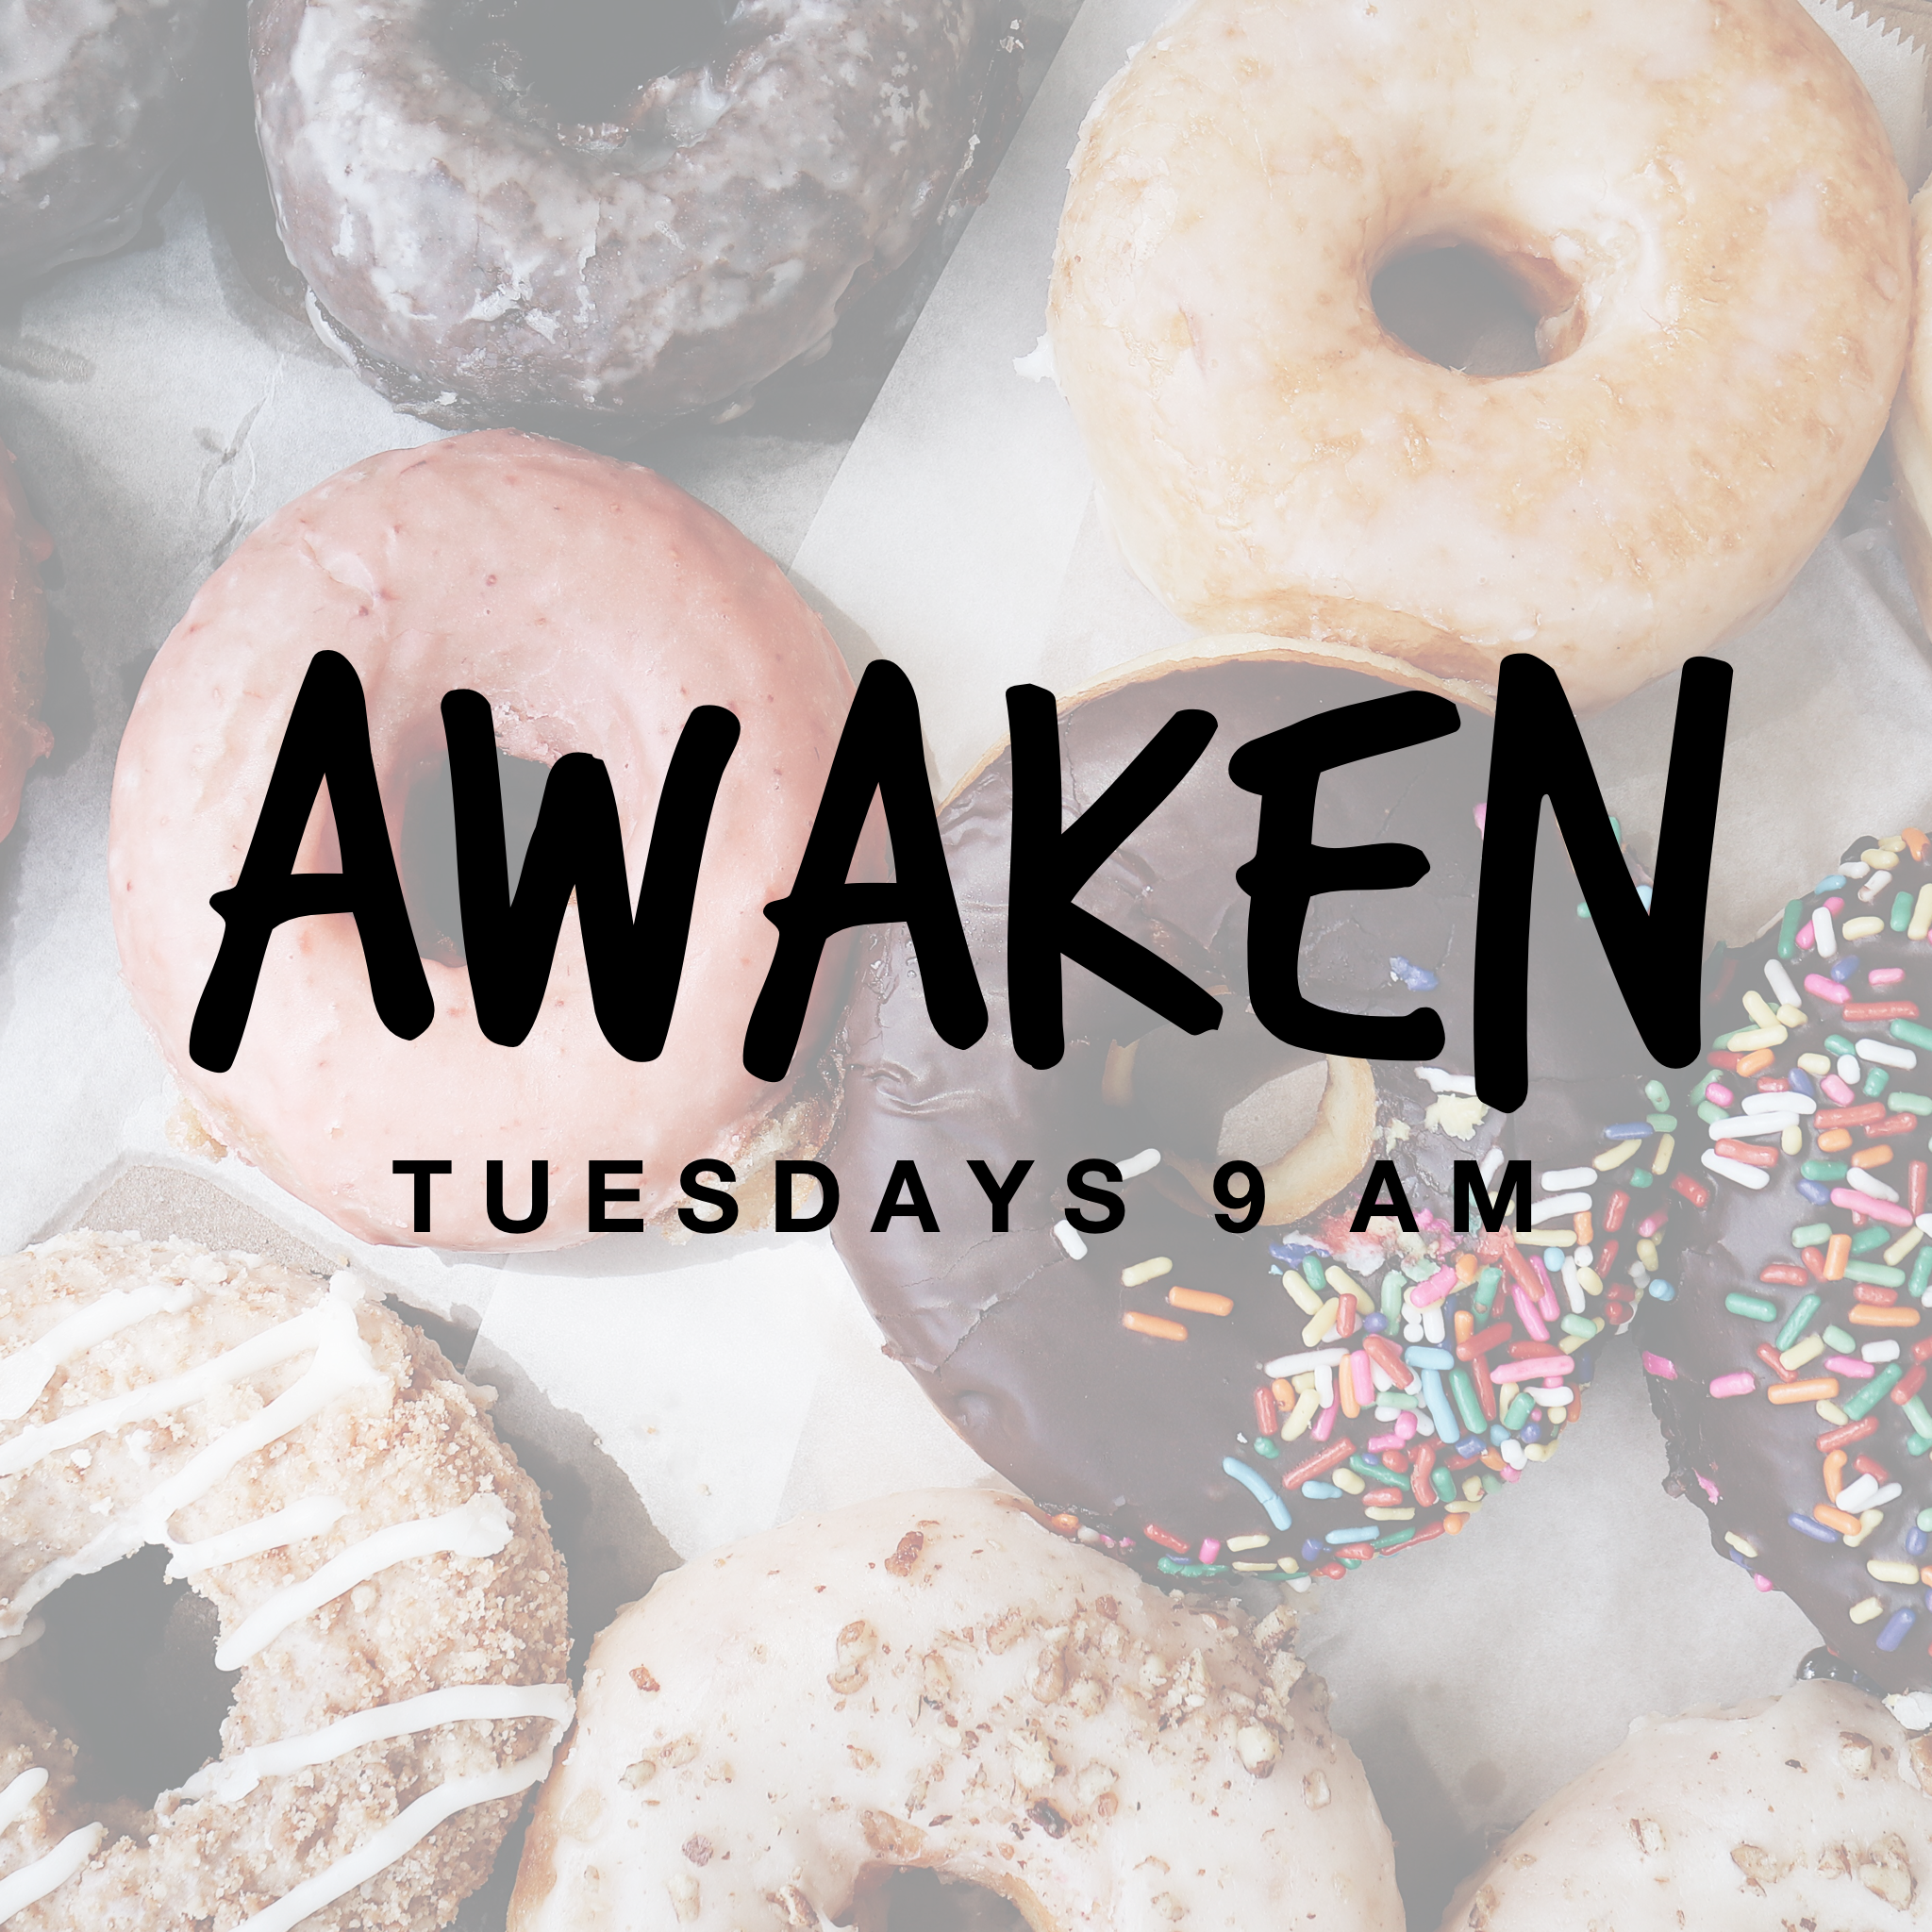 Do you like donuts? - Join us for daily Mass at POP in the atrium followed by donuts, games and fellowship in the youth center! Come relax, hang out with friends and well… eat donuts! We start June 11th!